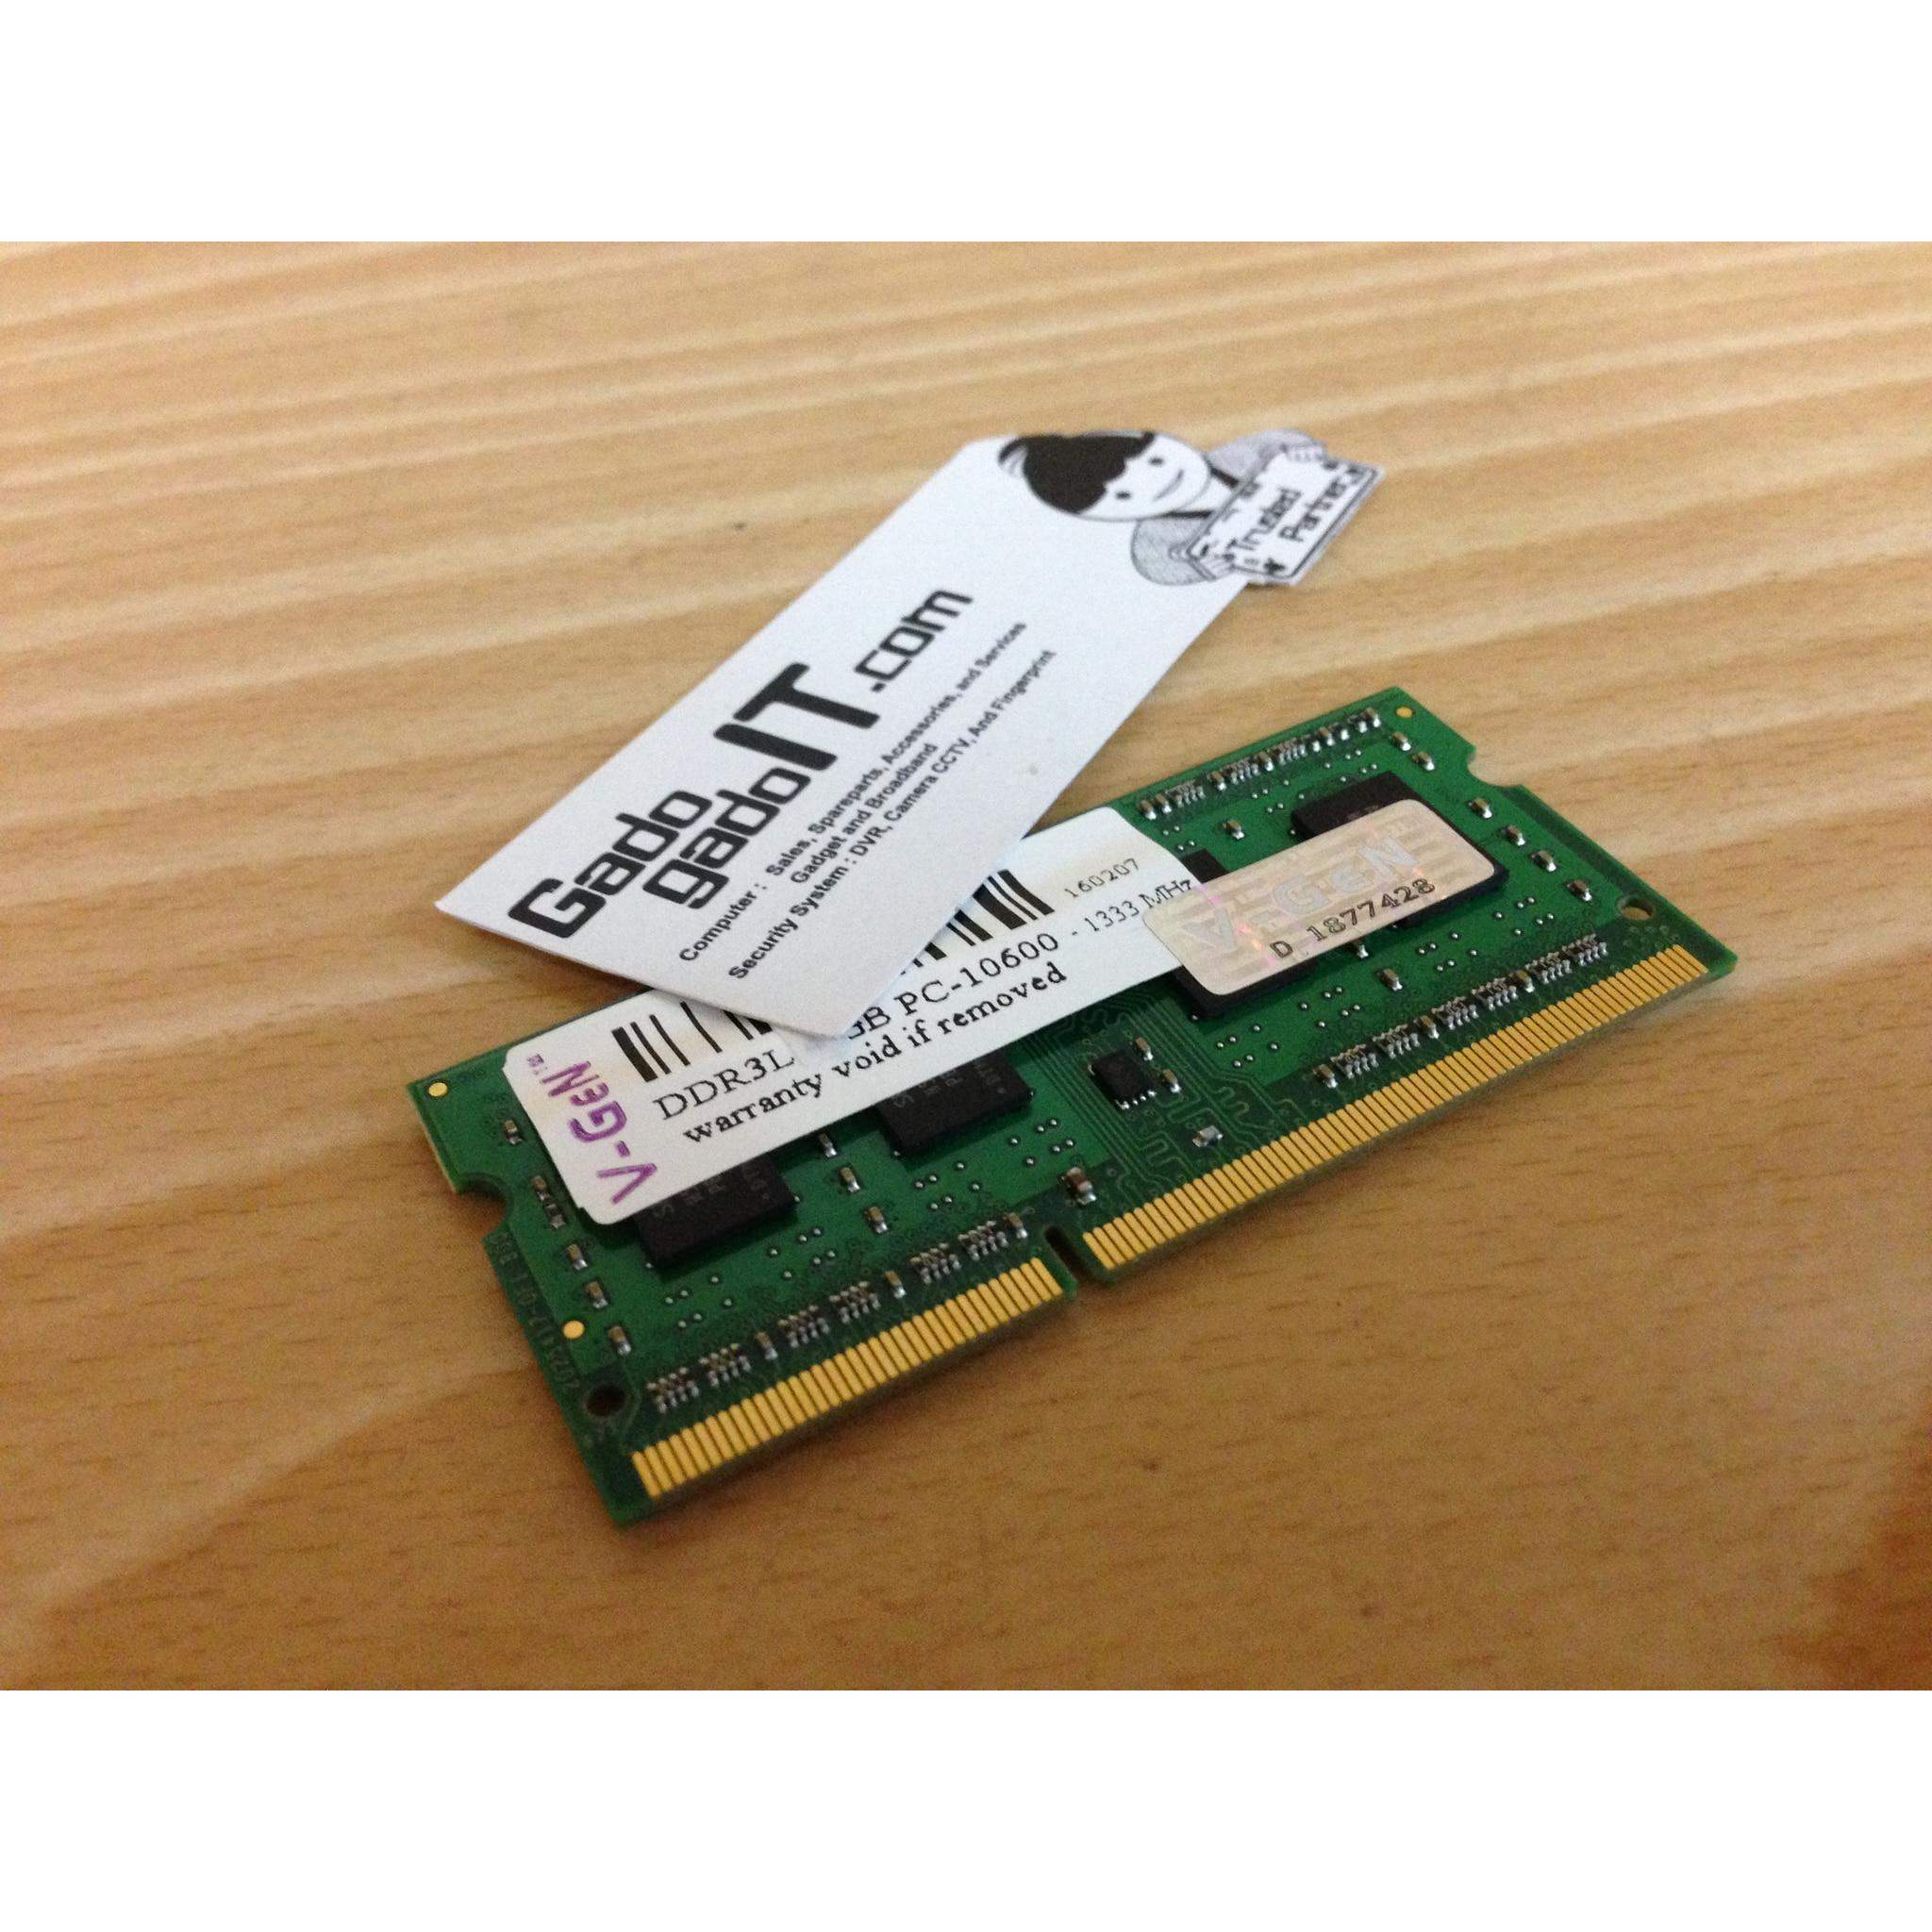 ... Memory RAM Laptop/Notebook V-Gen 4GB DDR3L PC-10600 1333Mhz (SODIMM ...